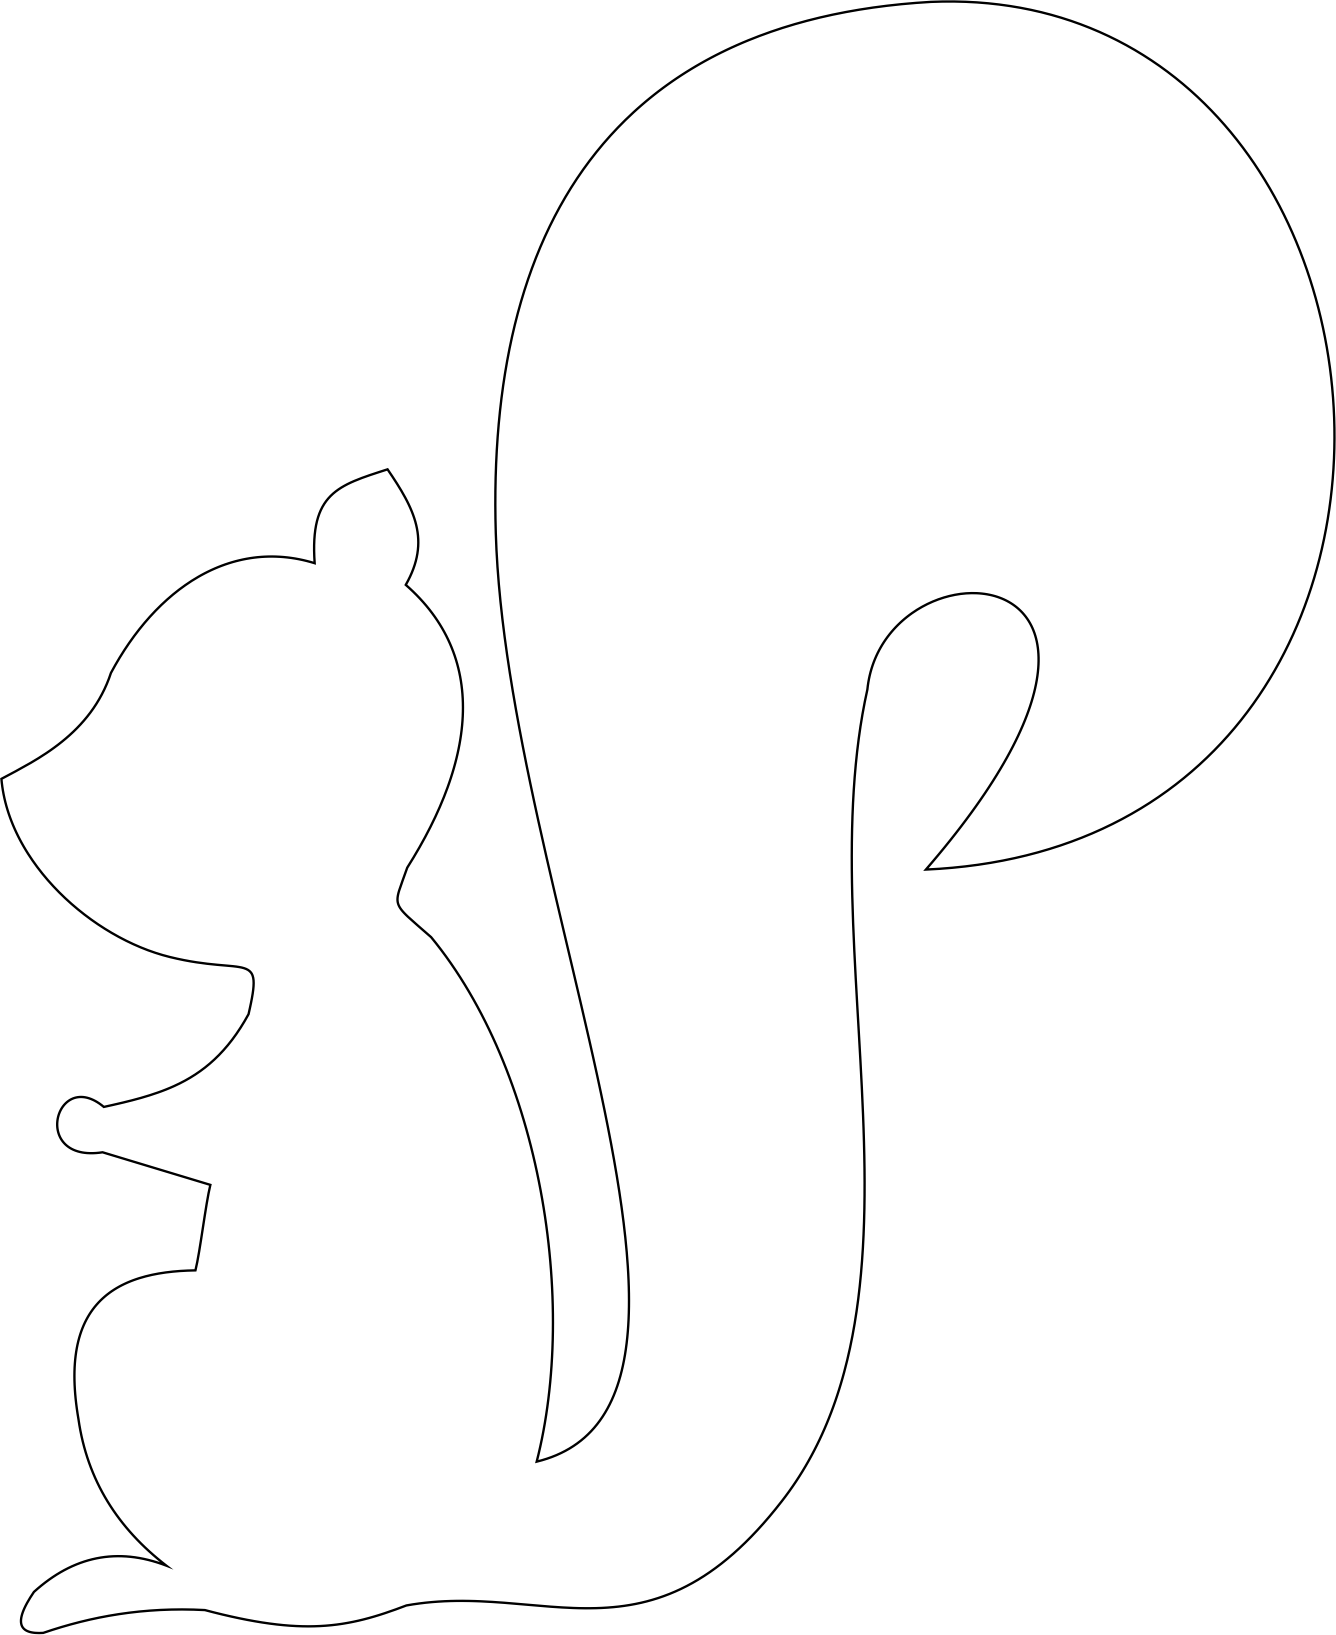 image relating to Printable Squirrel Target named On the lookout clipart focus searching, On the lookout concentrate on the lookout